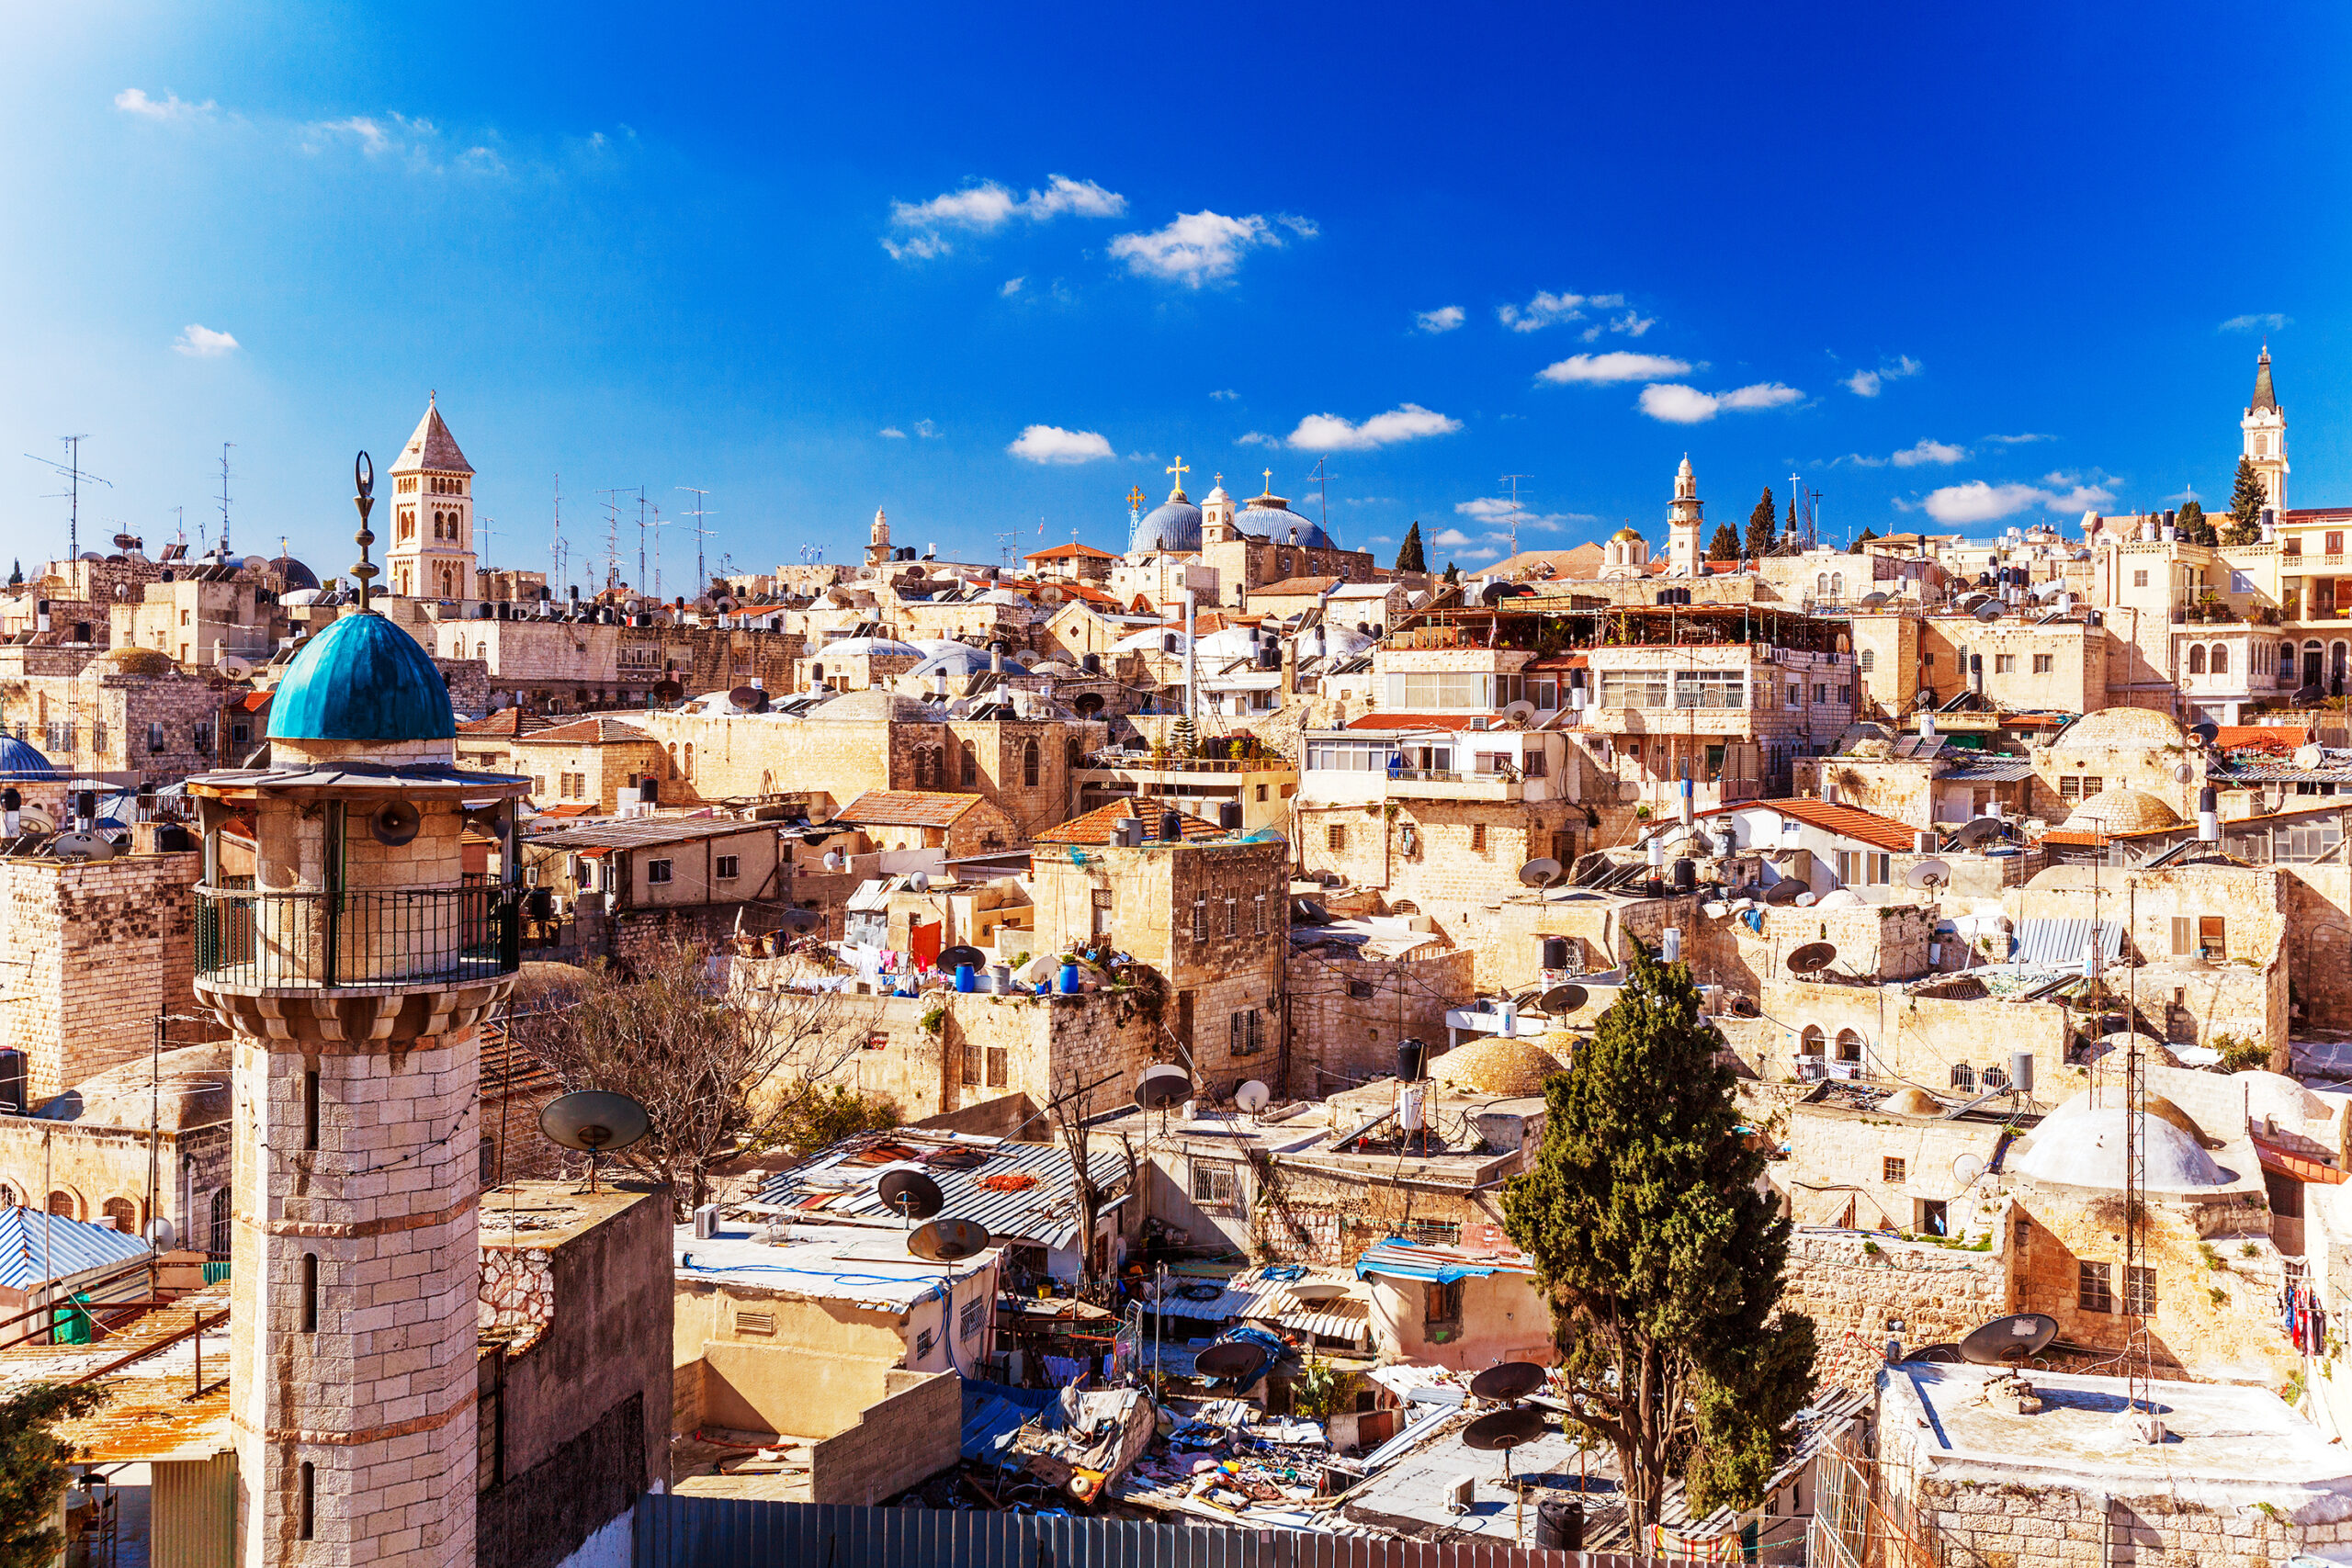 Roofs of Old City with Holy Sepulcher Church Dome, Jerusalem, Israel.